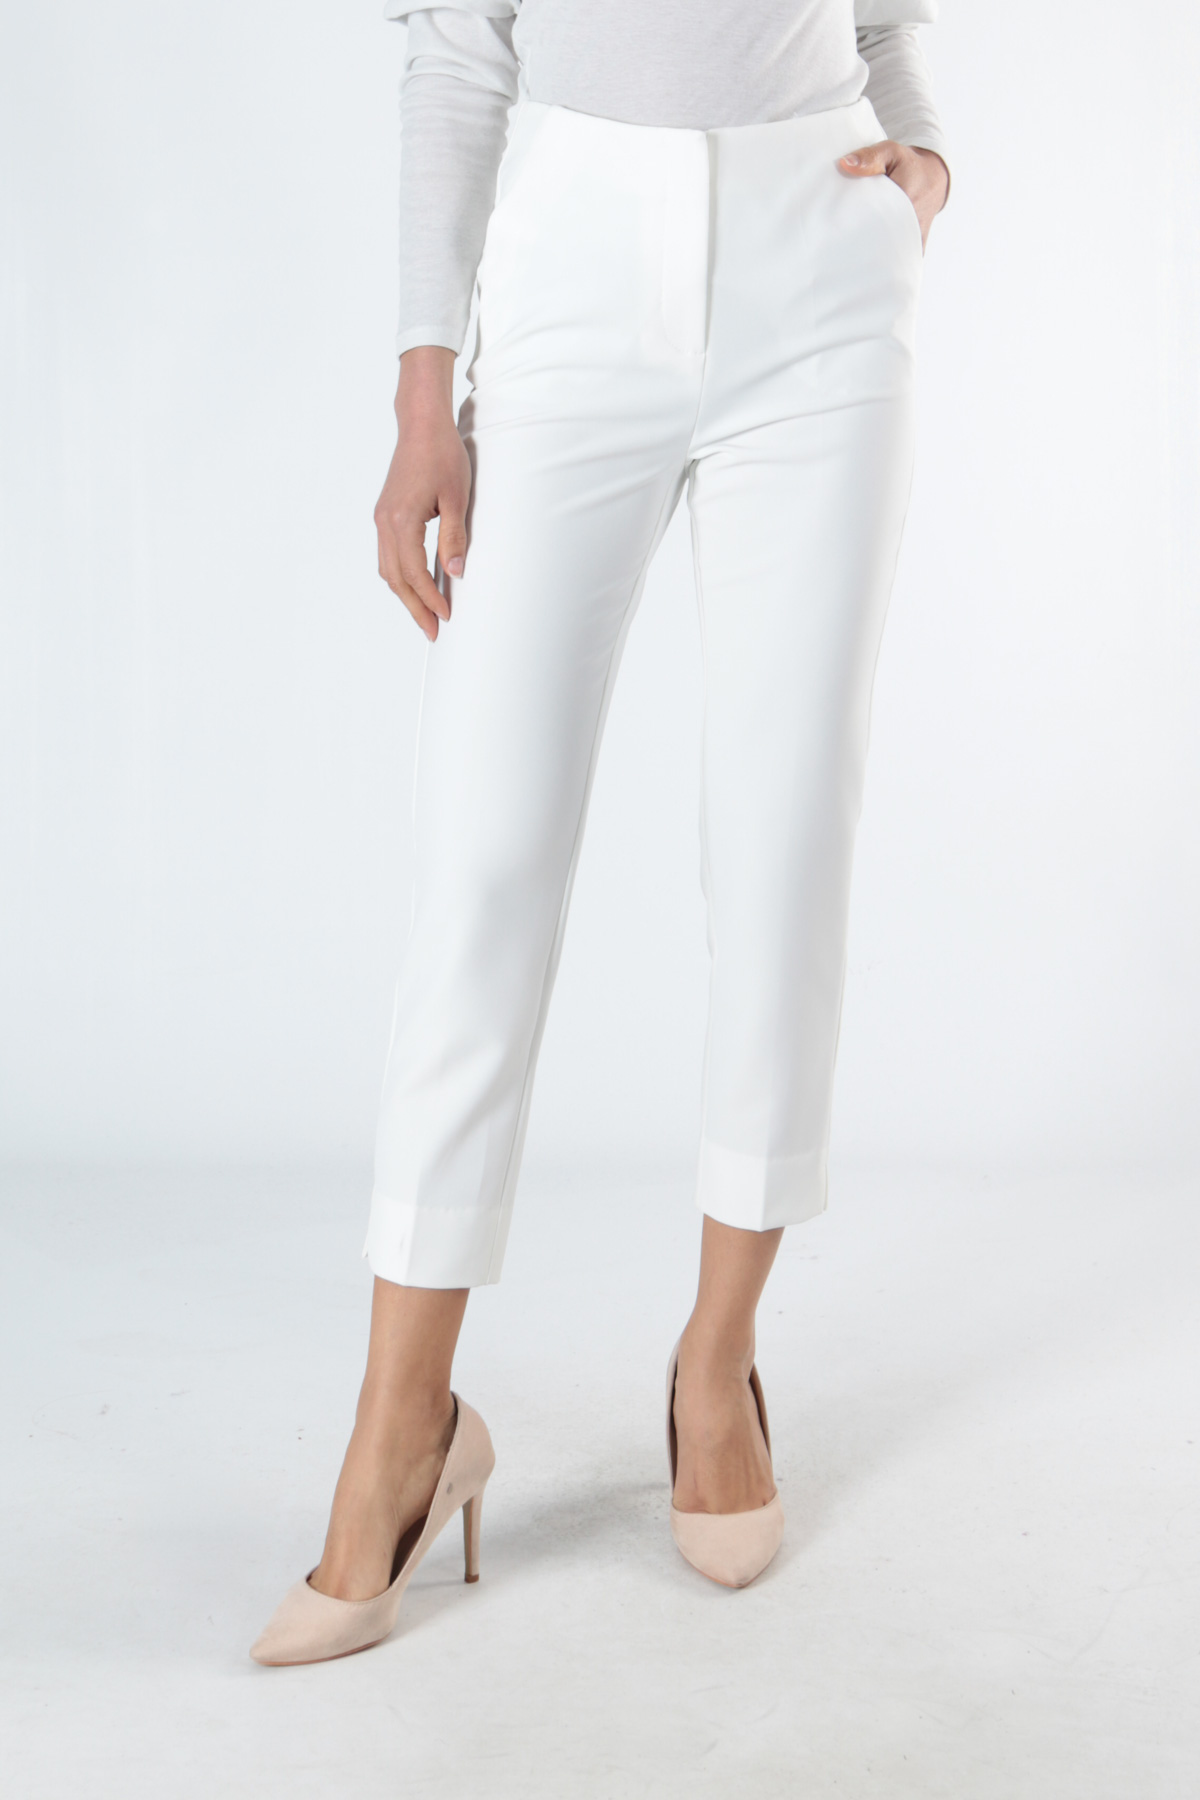 Pantalons Femme Blanc ATTENTIF P7308 #c eFashion Paris